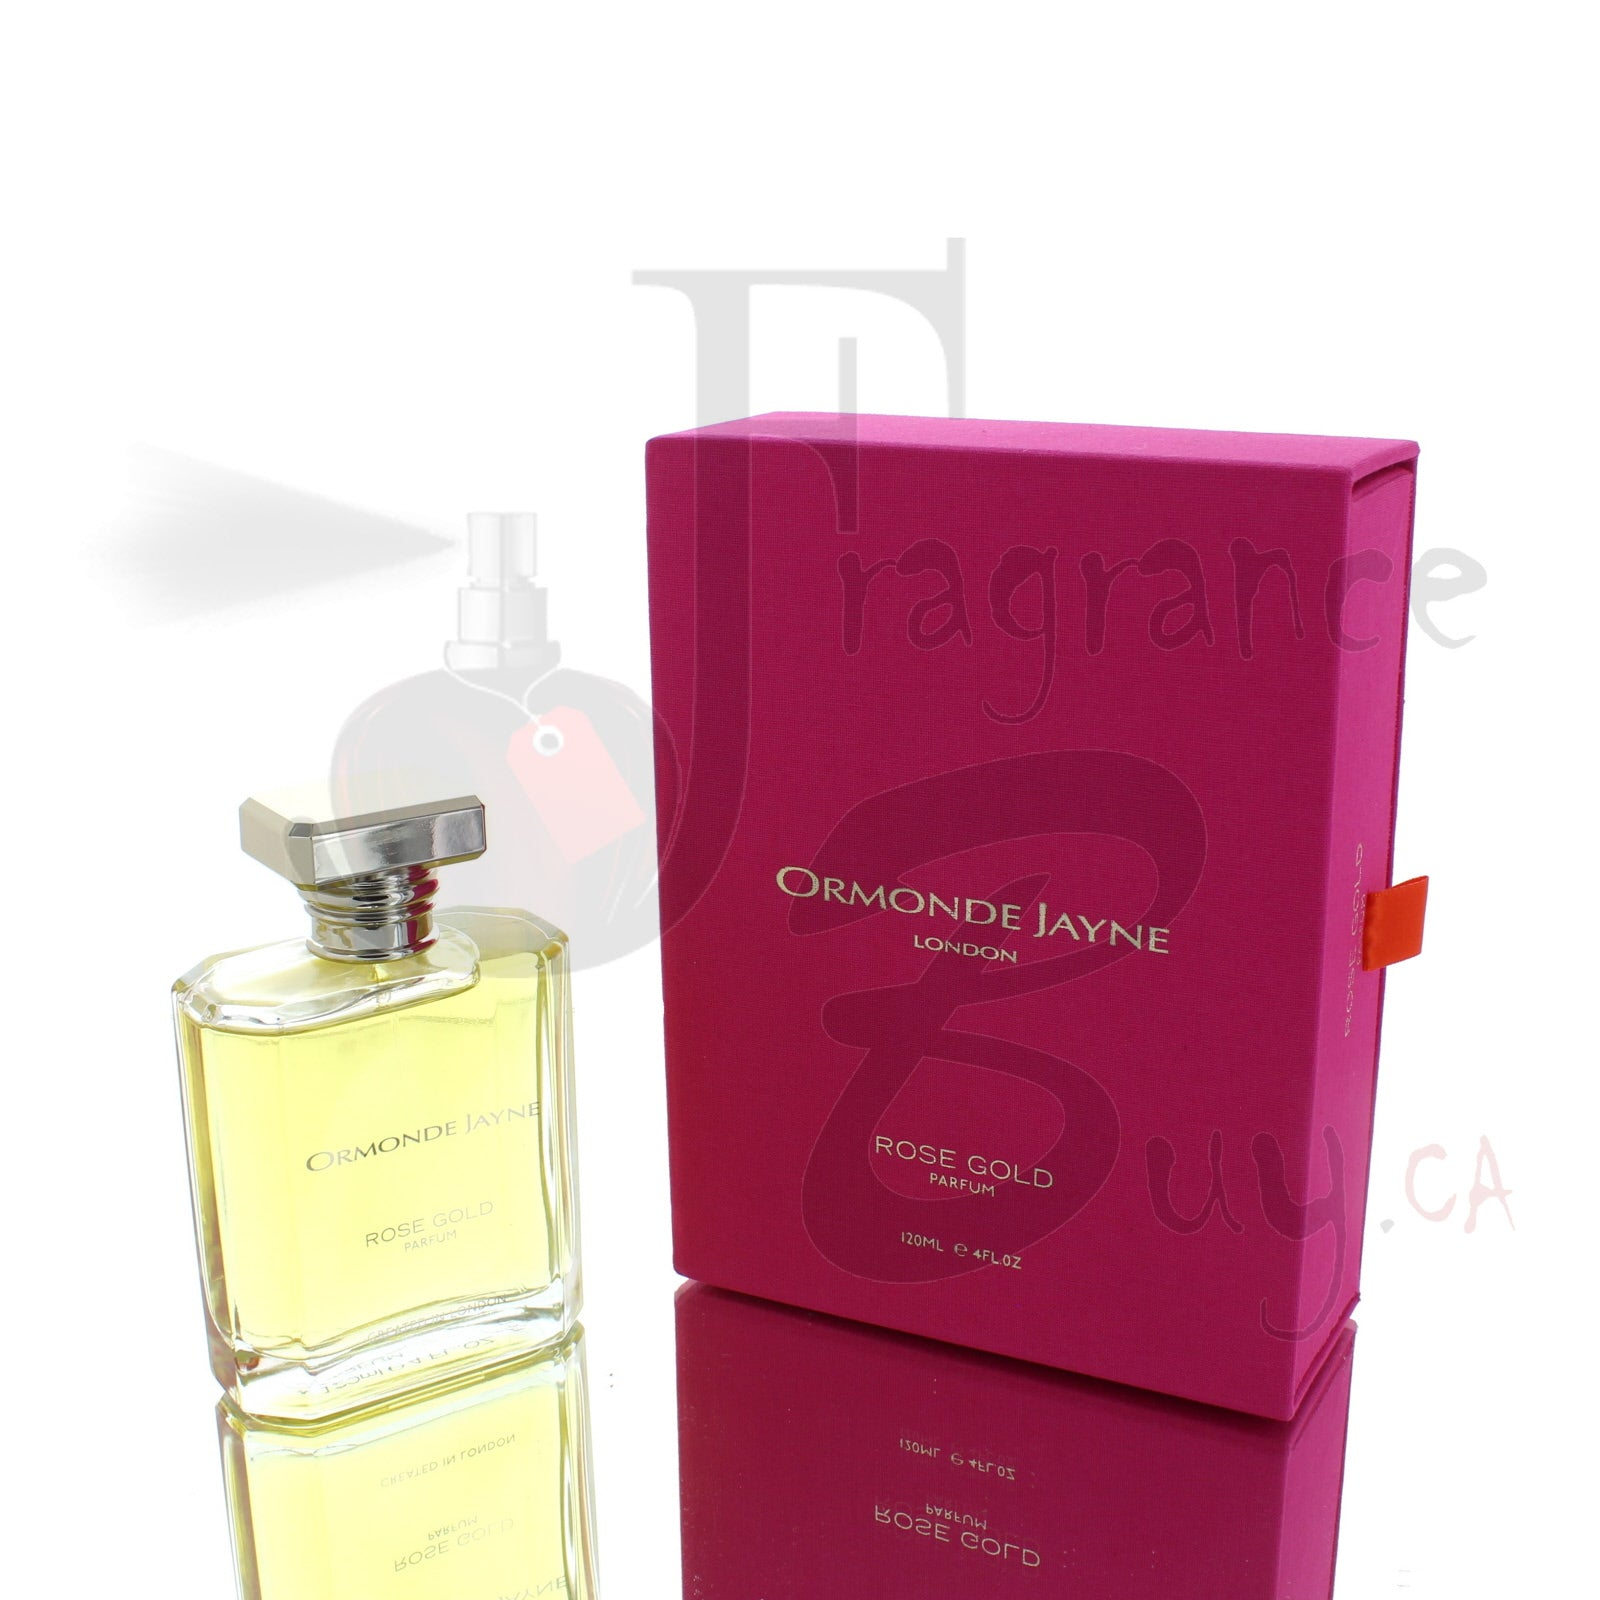 Ormonde Jayne Rose Gold For Man/Woman